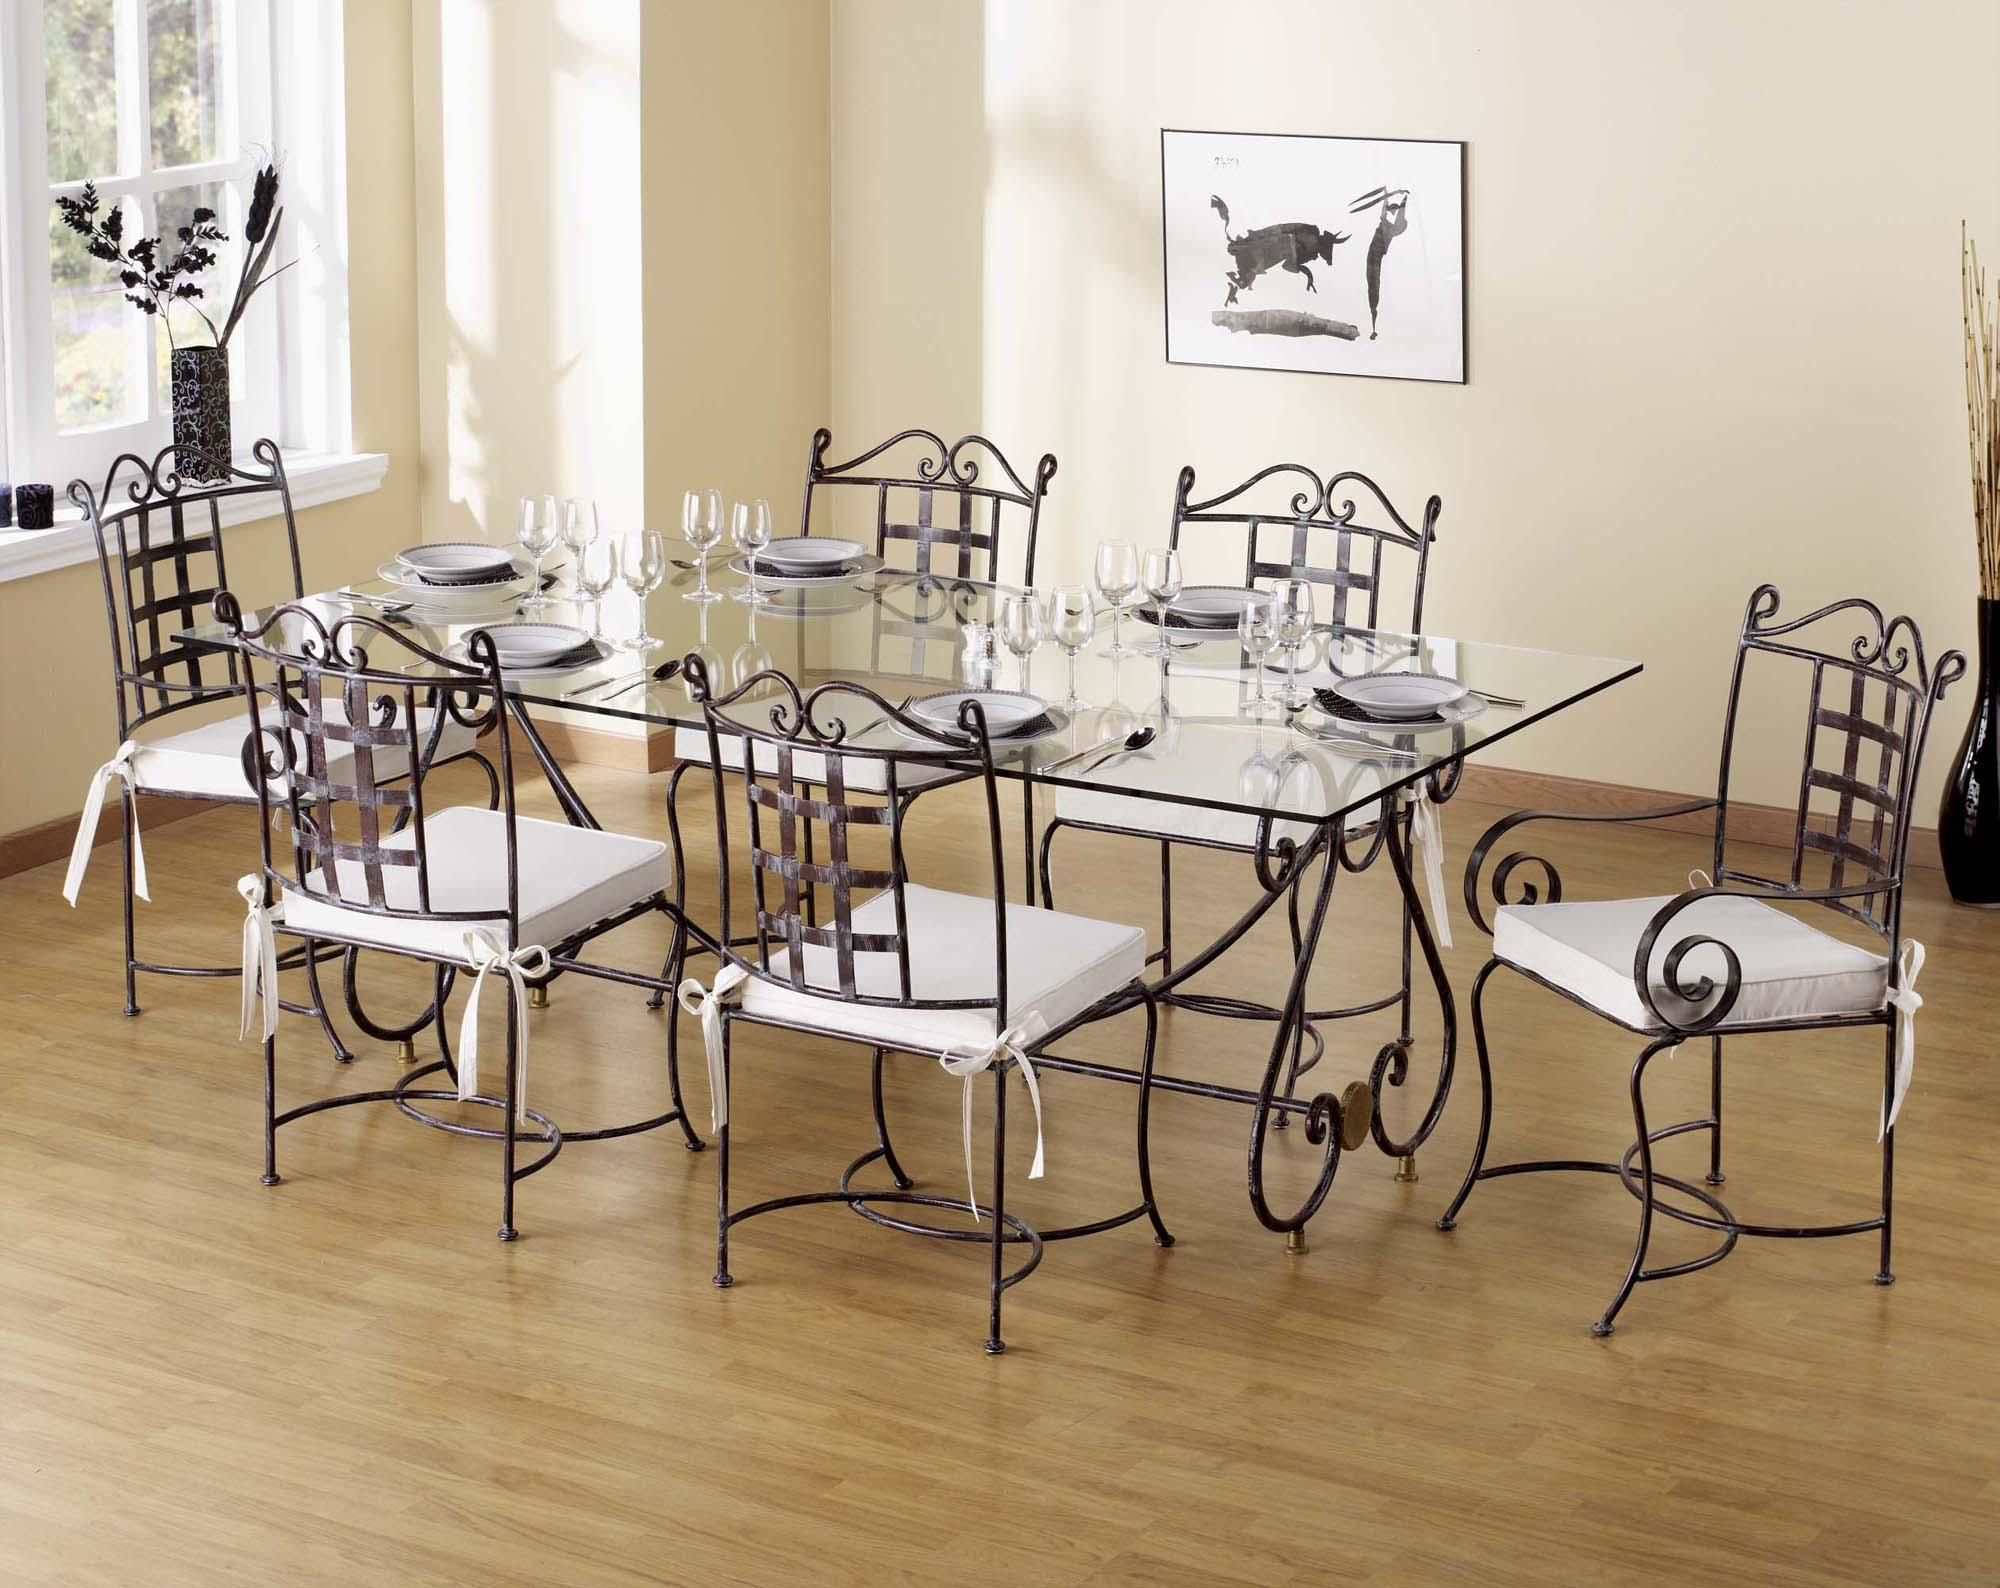 Fer Forge Prestige Dining Table Wrought Iron Furniture Small Space Interior Design